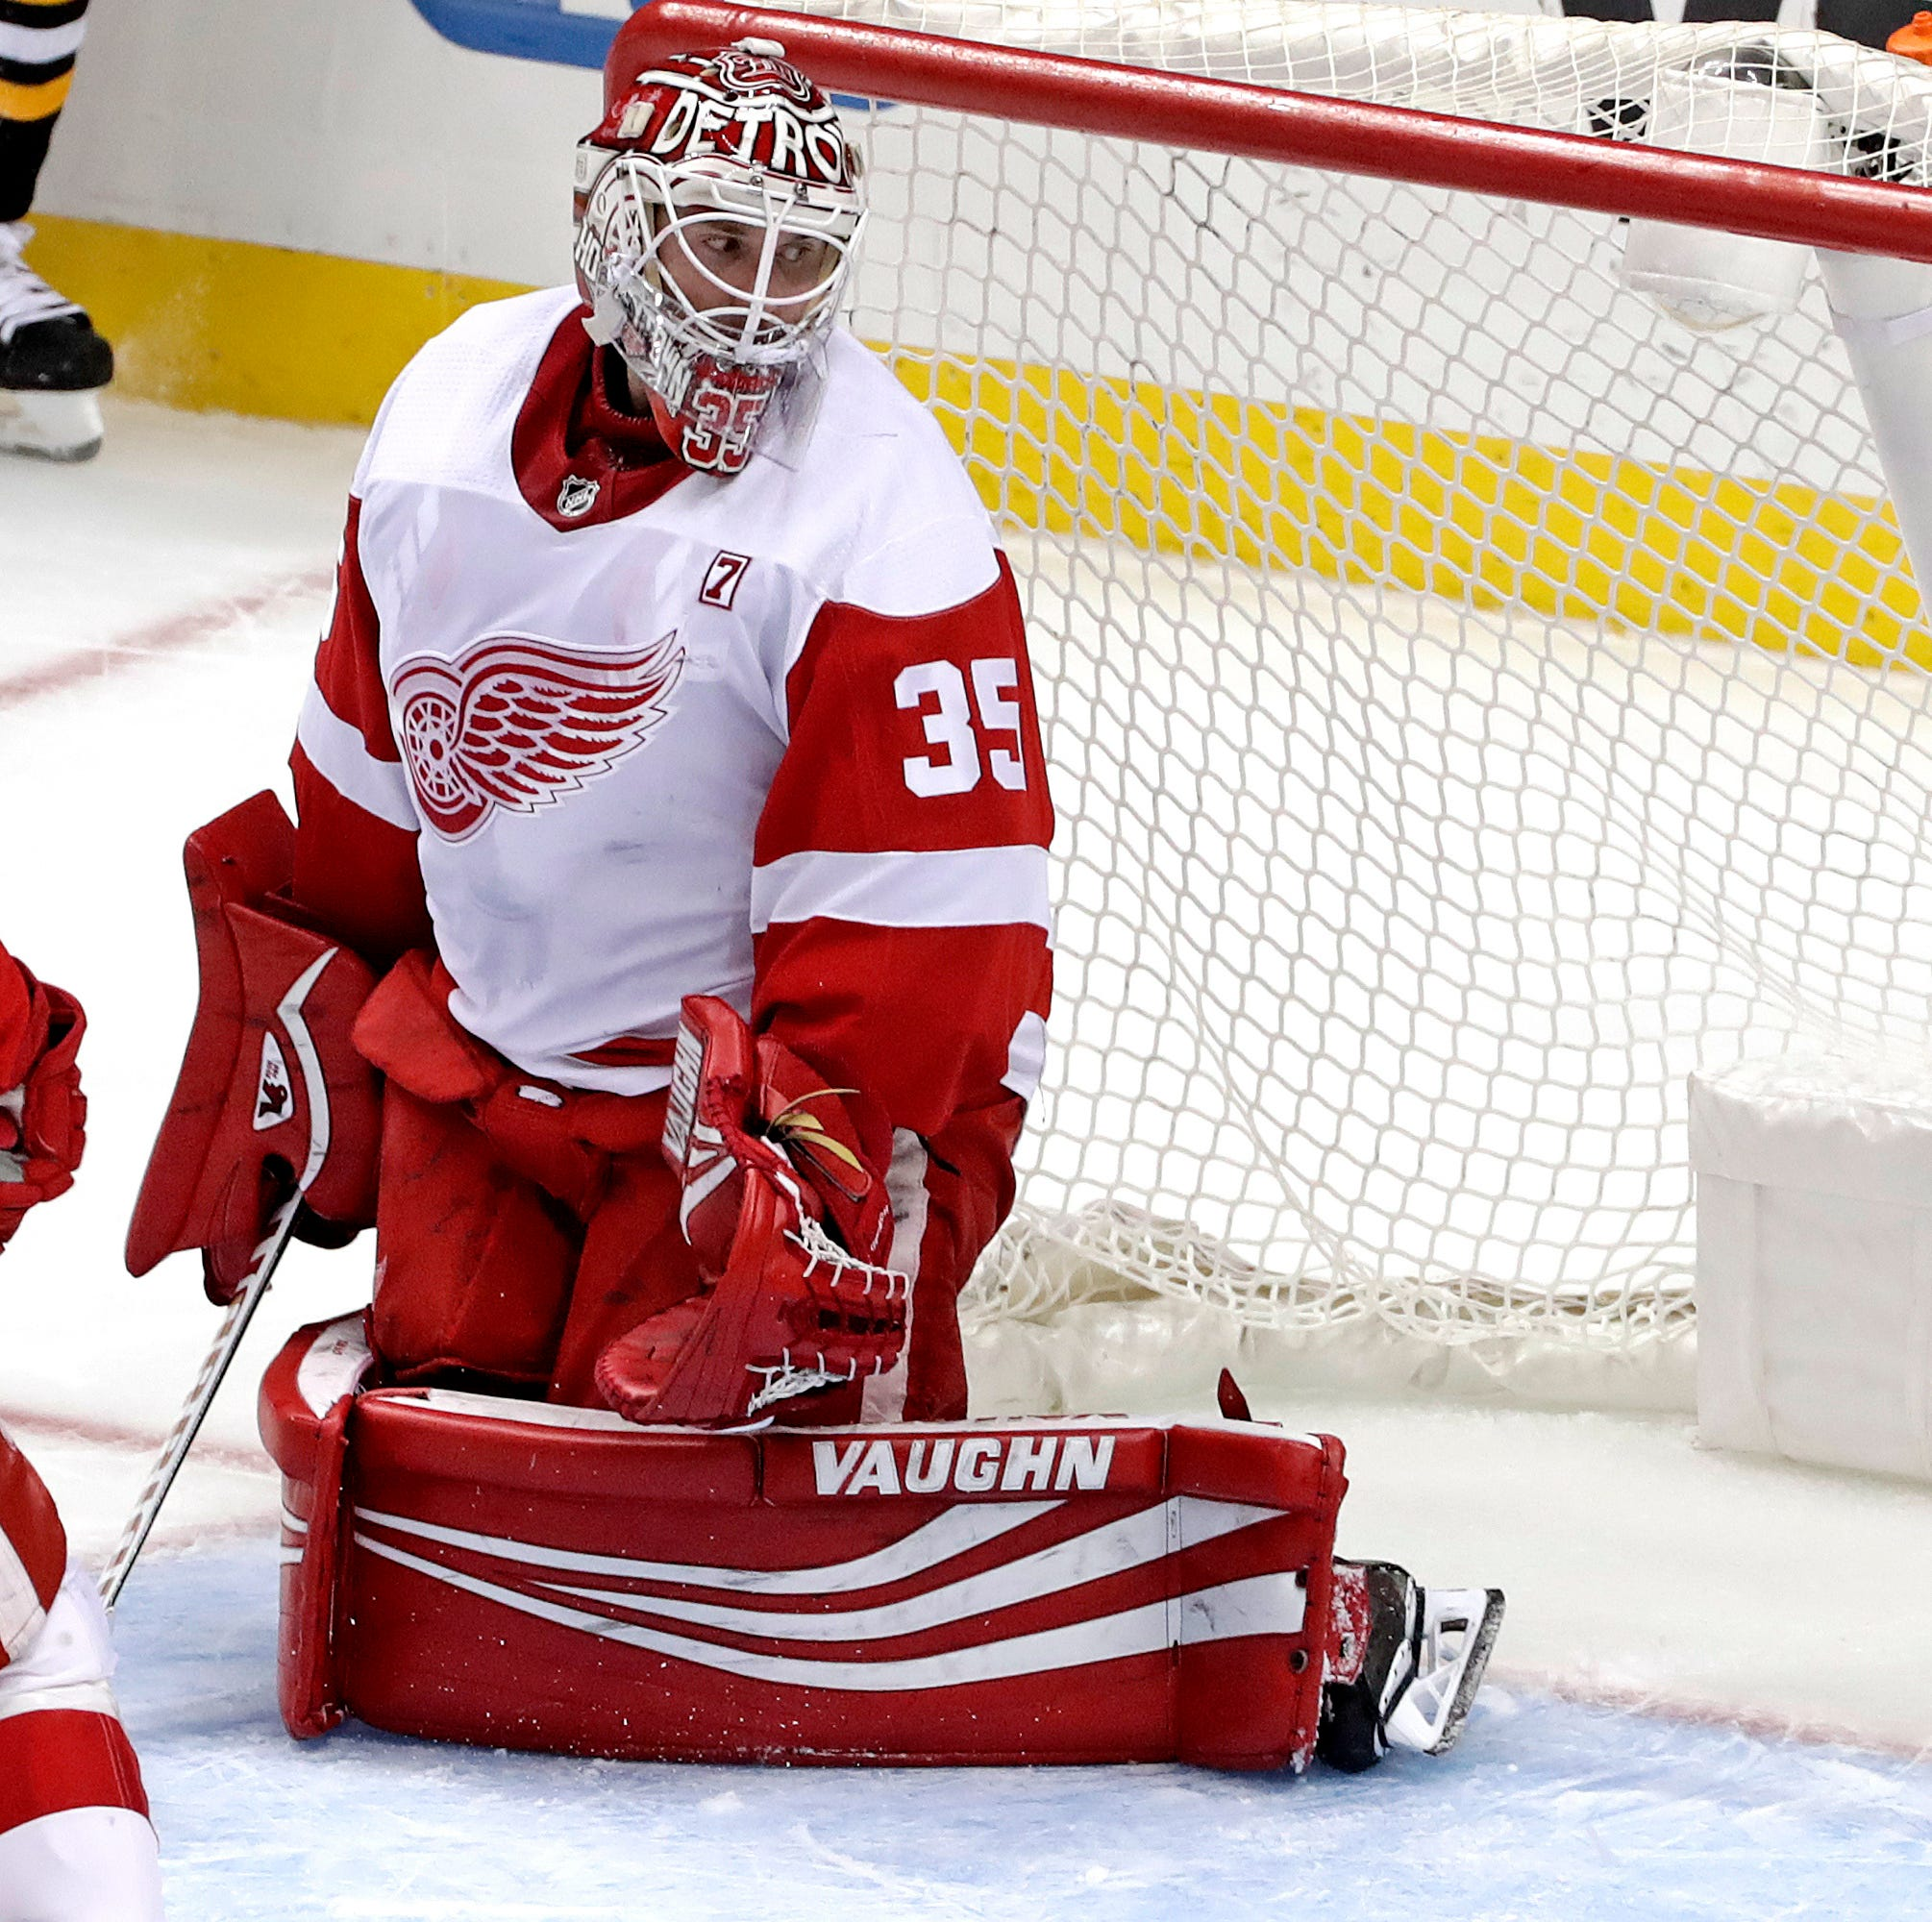 'It just wasn't good enough': Red Wings see 6-game win streak crumble in lackluster loss to Penguins